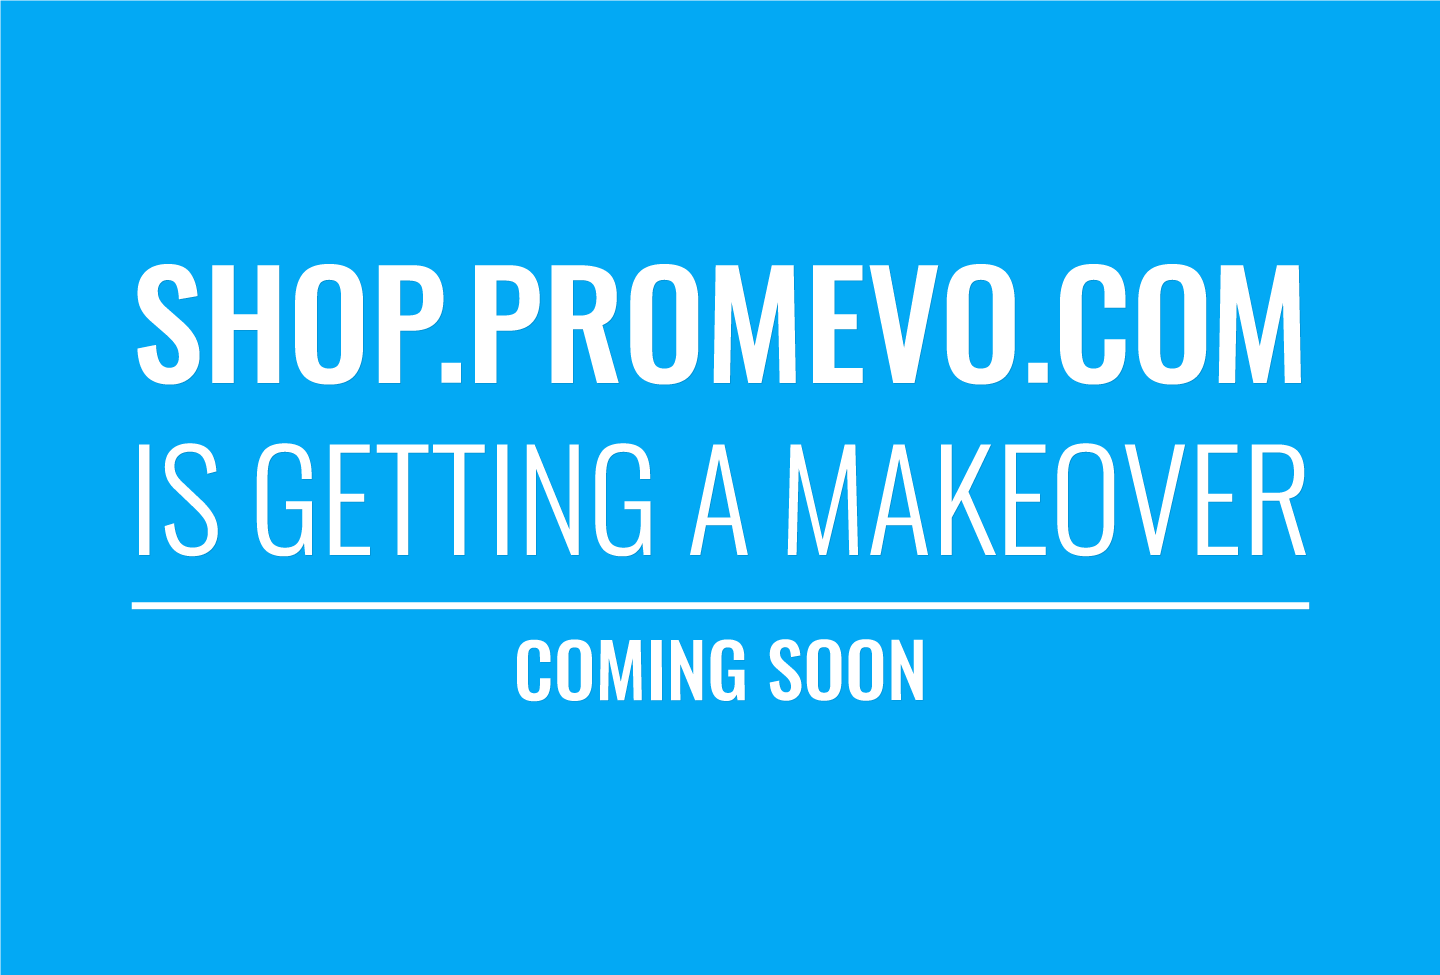 Shop.promevo.com is getting a makeover! Coming soon.